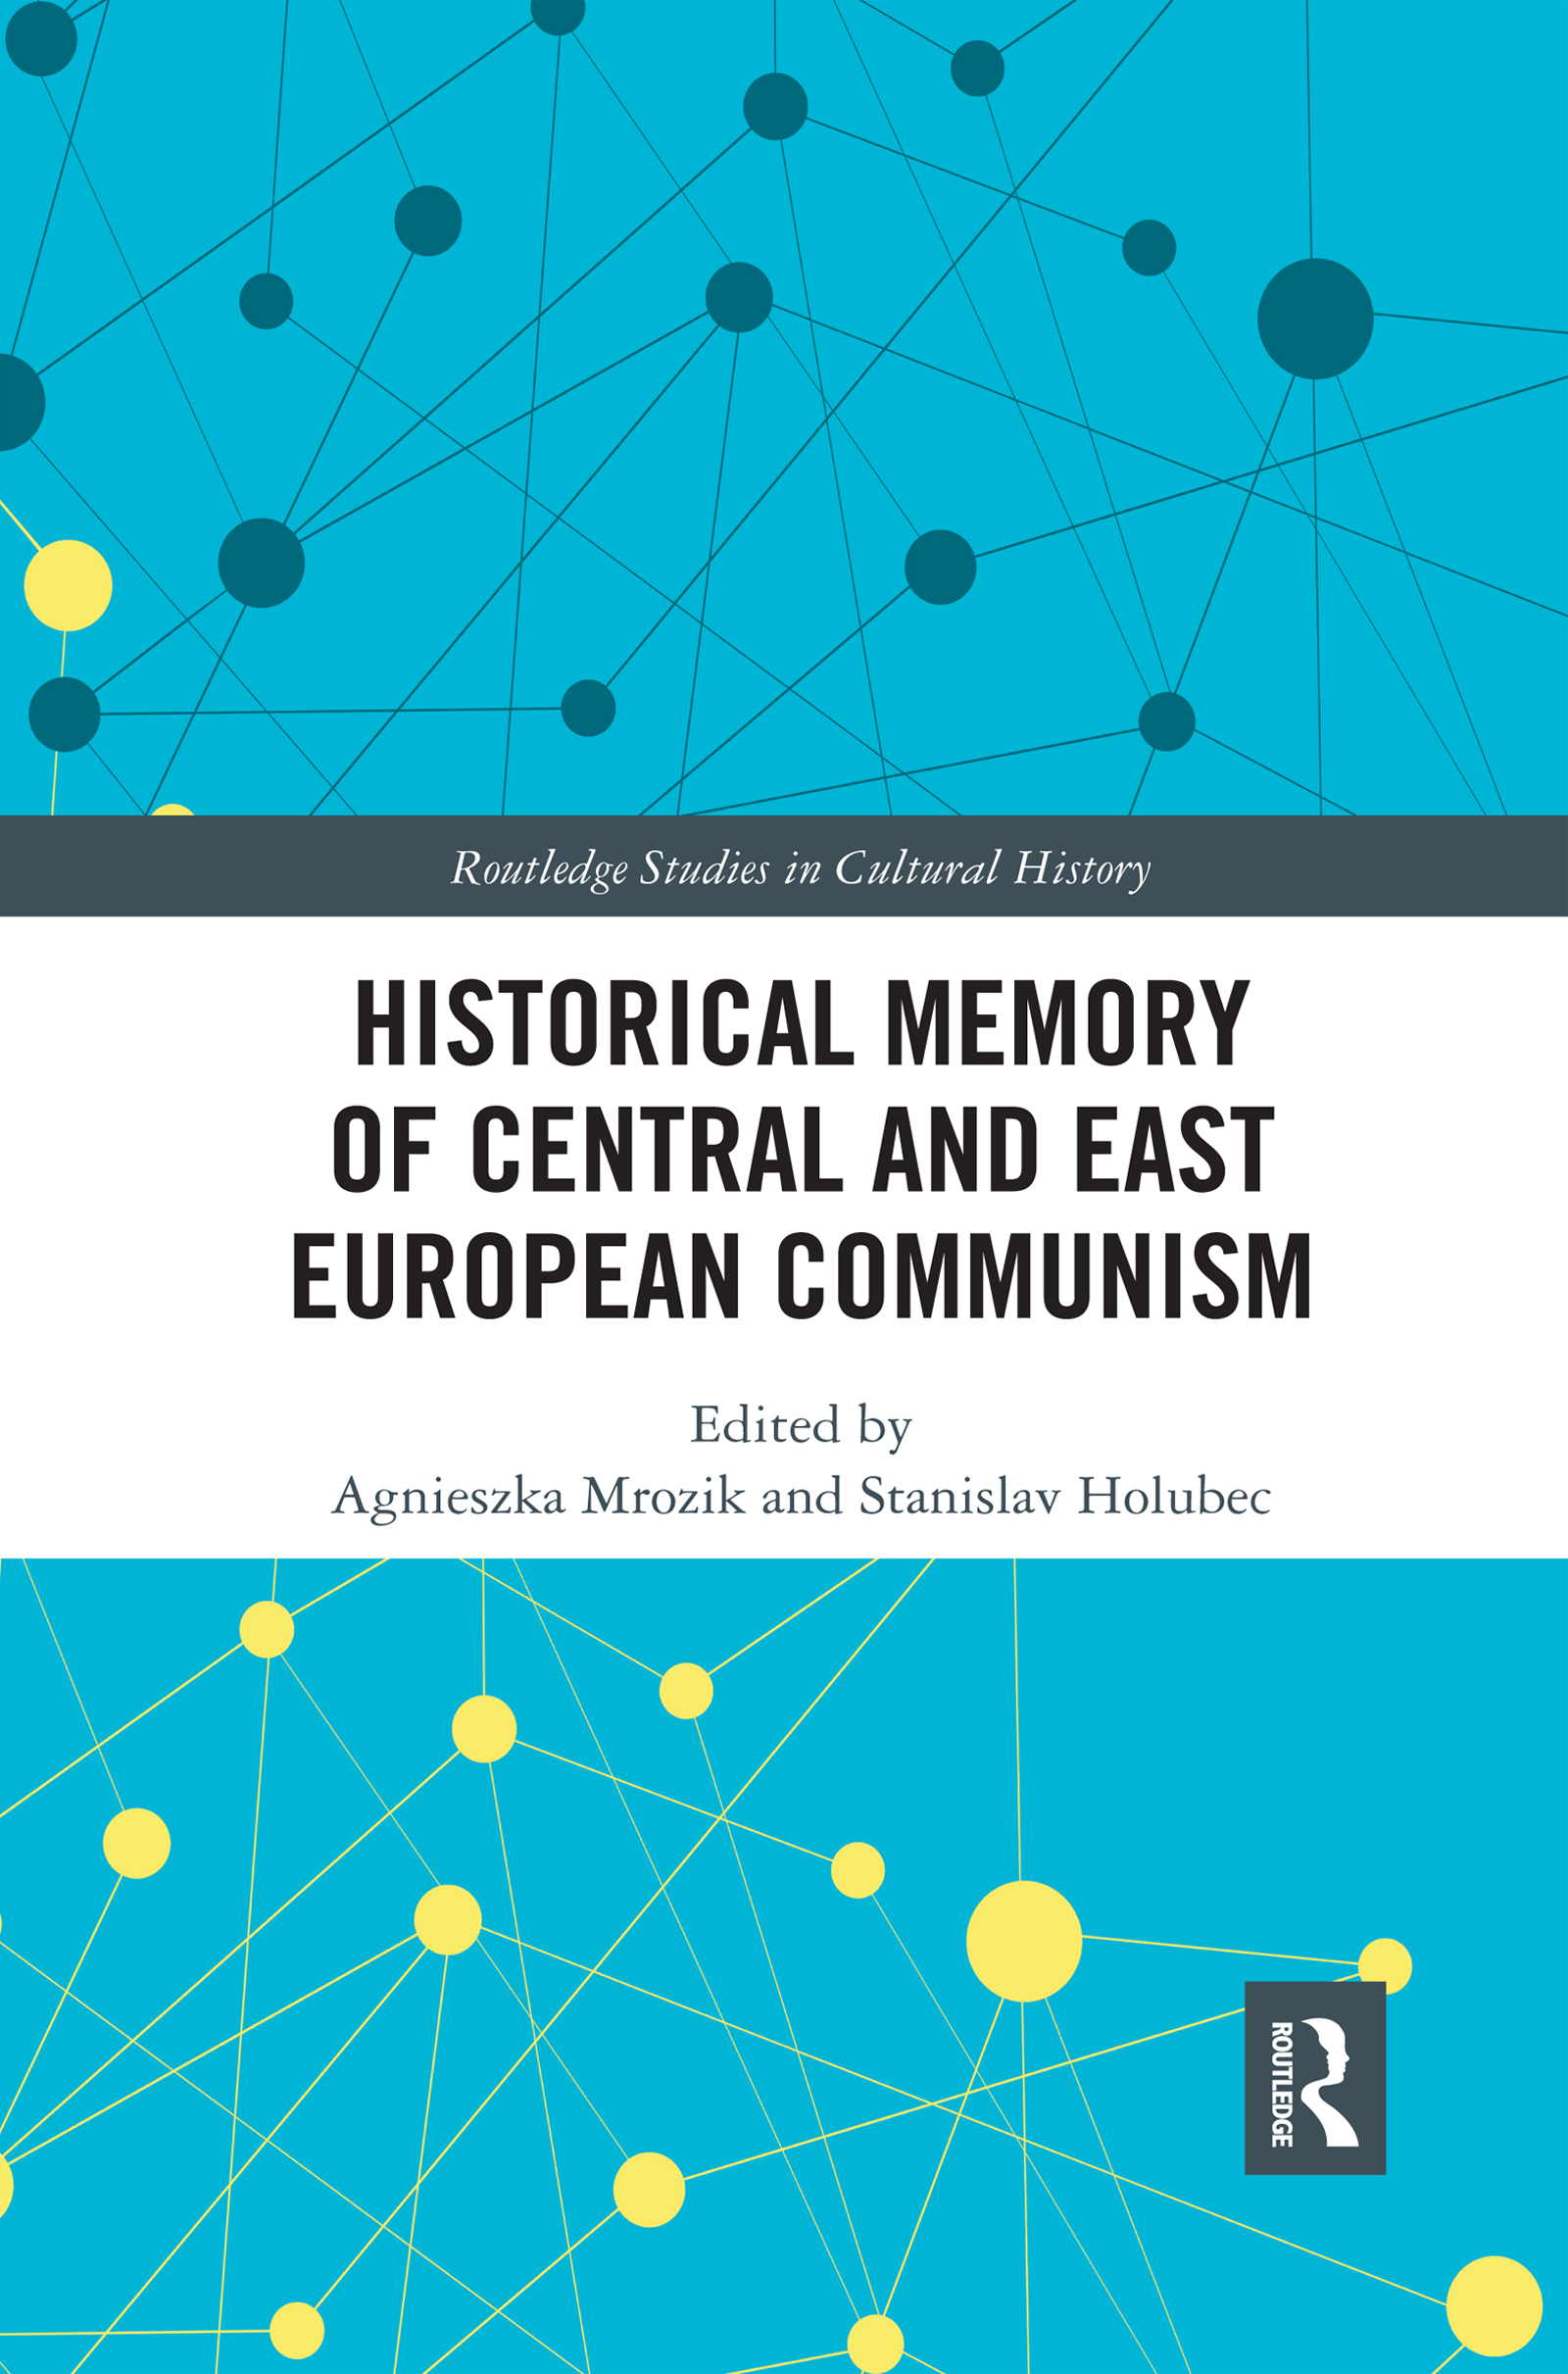 Historical Memory of Central and East European Communism